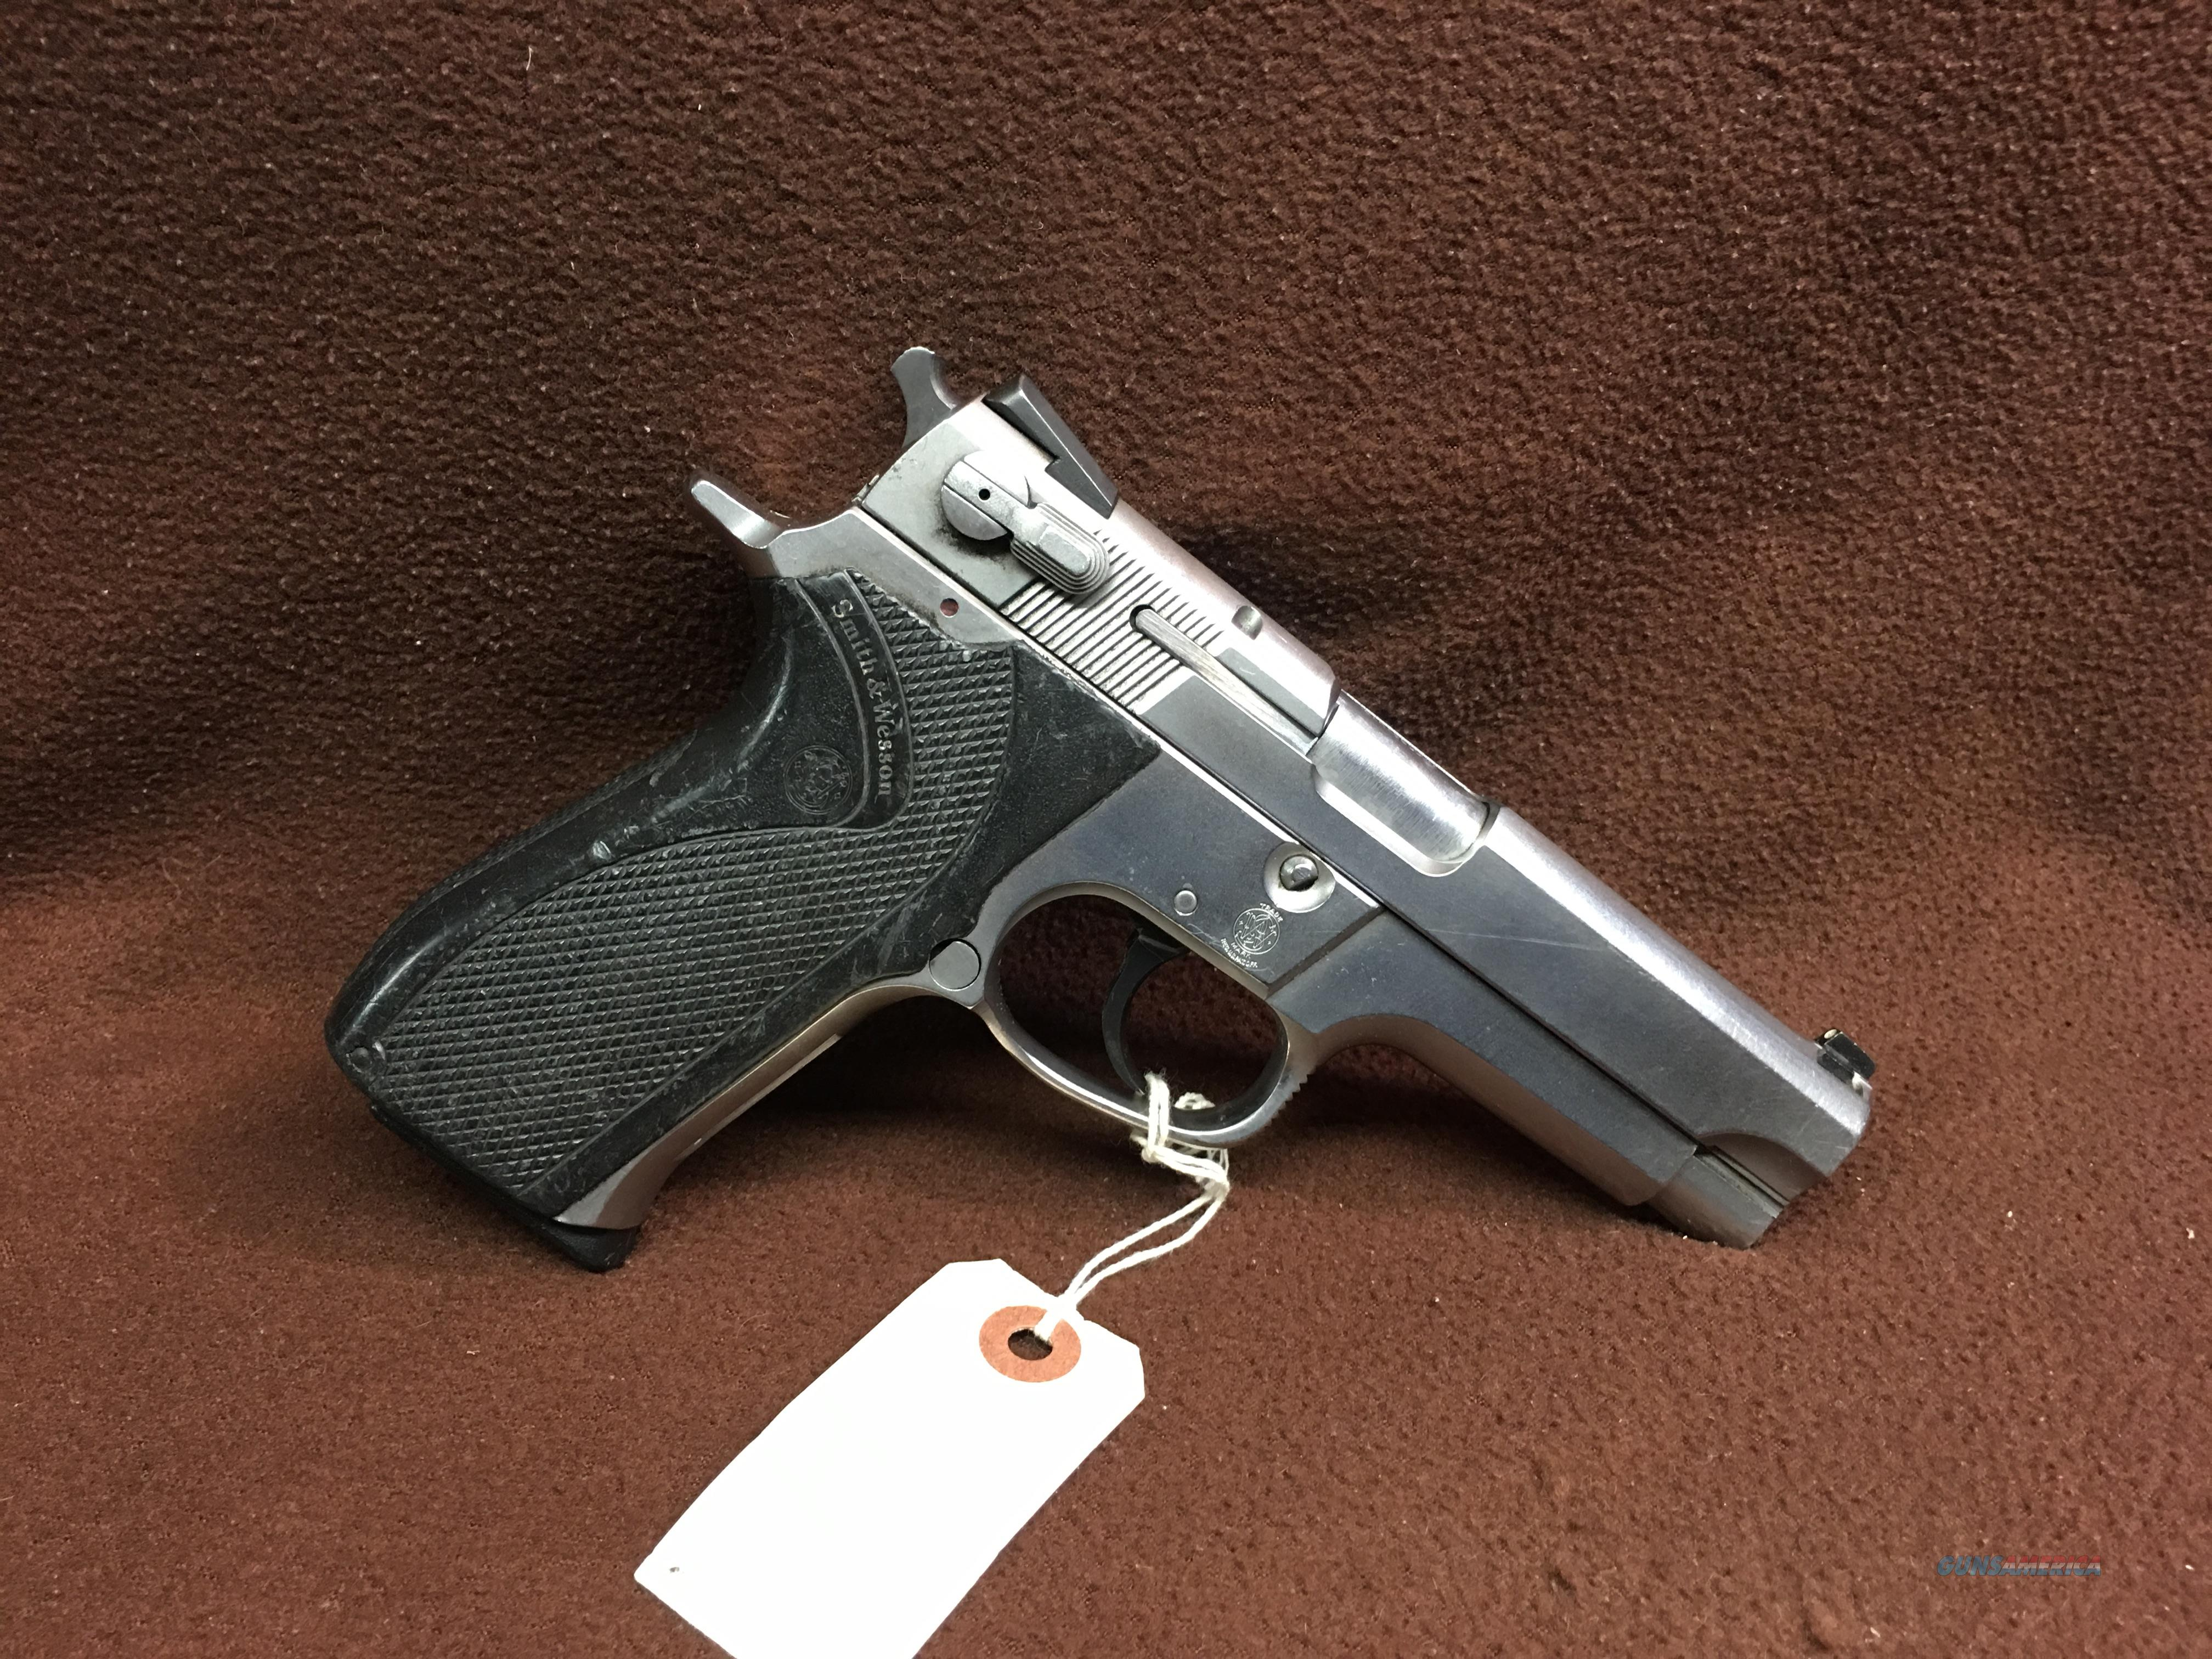 SMITH WESSON 5906       STEEL  FRAME        15RD MAG  Guns > Pistols > Smith & Wesson Pistols - Autos > Steel Frame